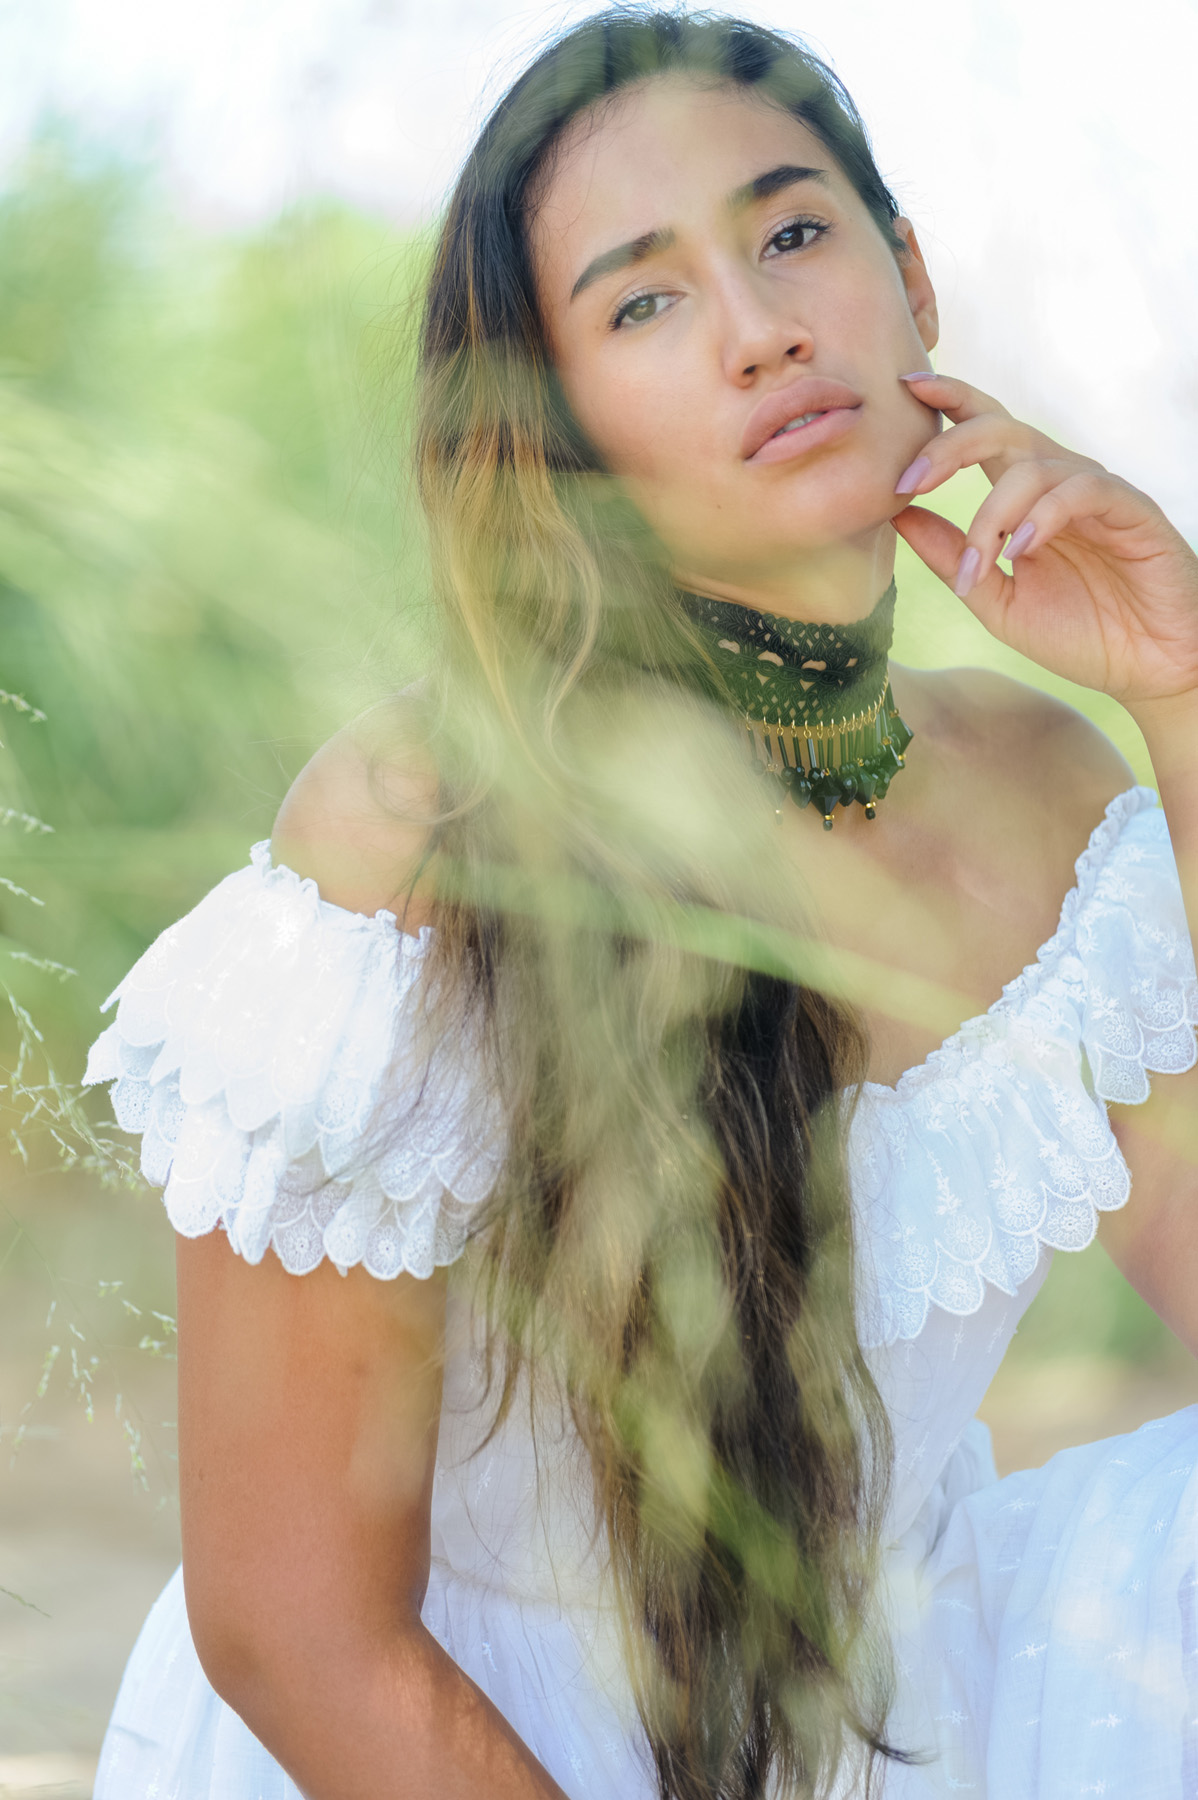 portrait of Shari, a woman wearing a white dress with long brown hair with tall green grass blurred in front of her